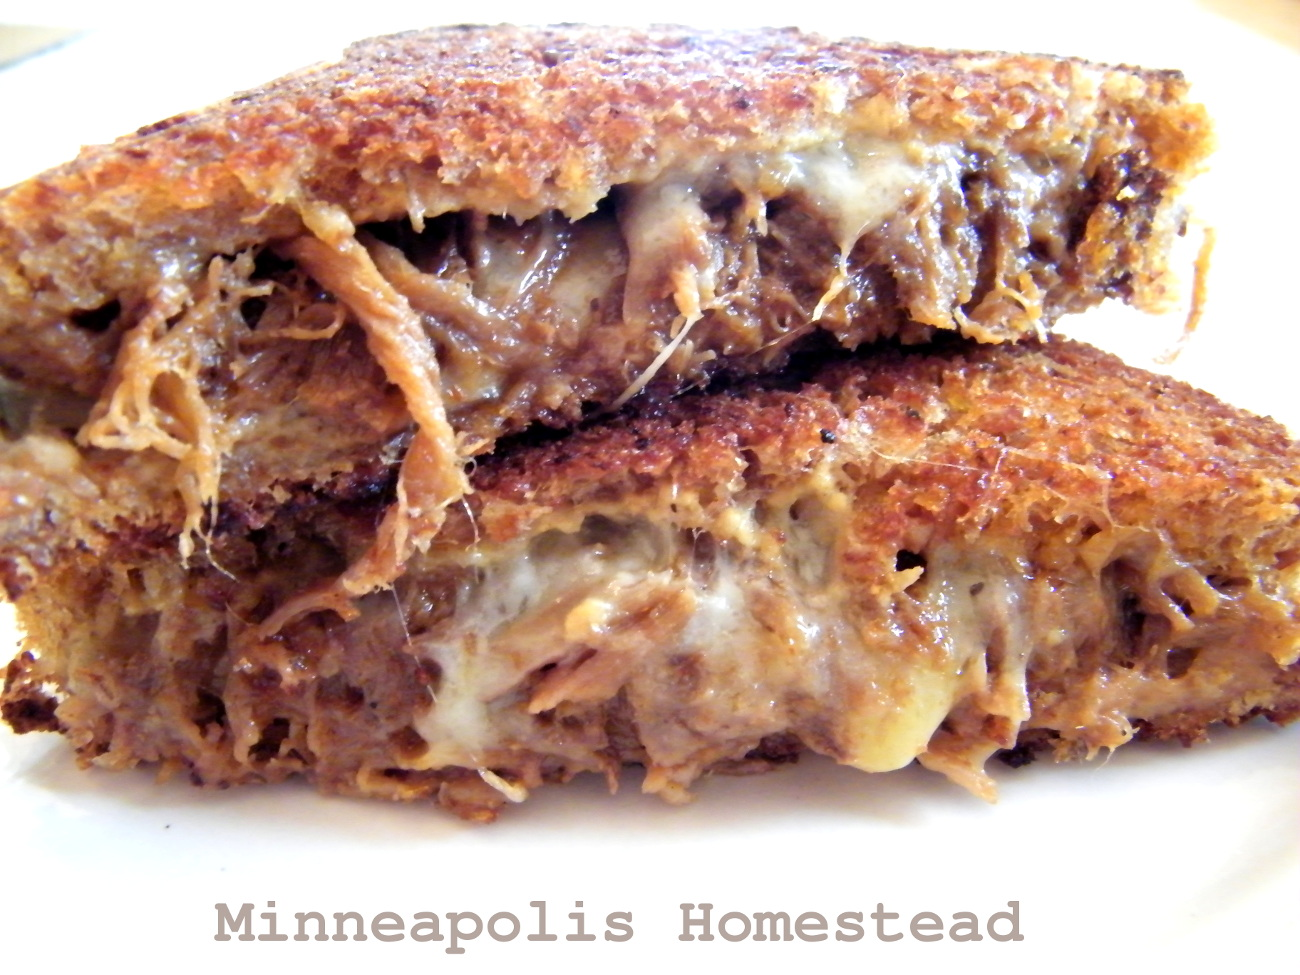 Pulled pork sandwich with cheese recipe